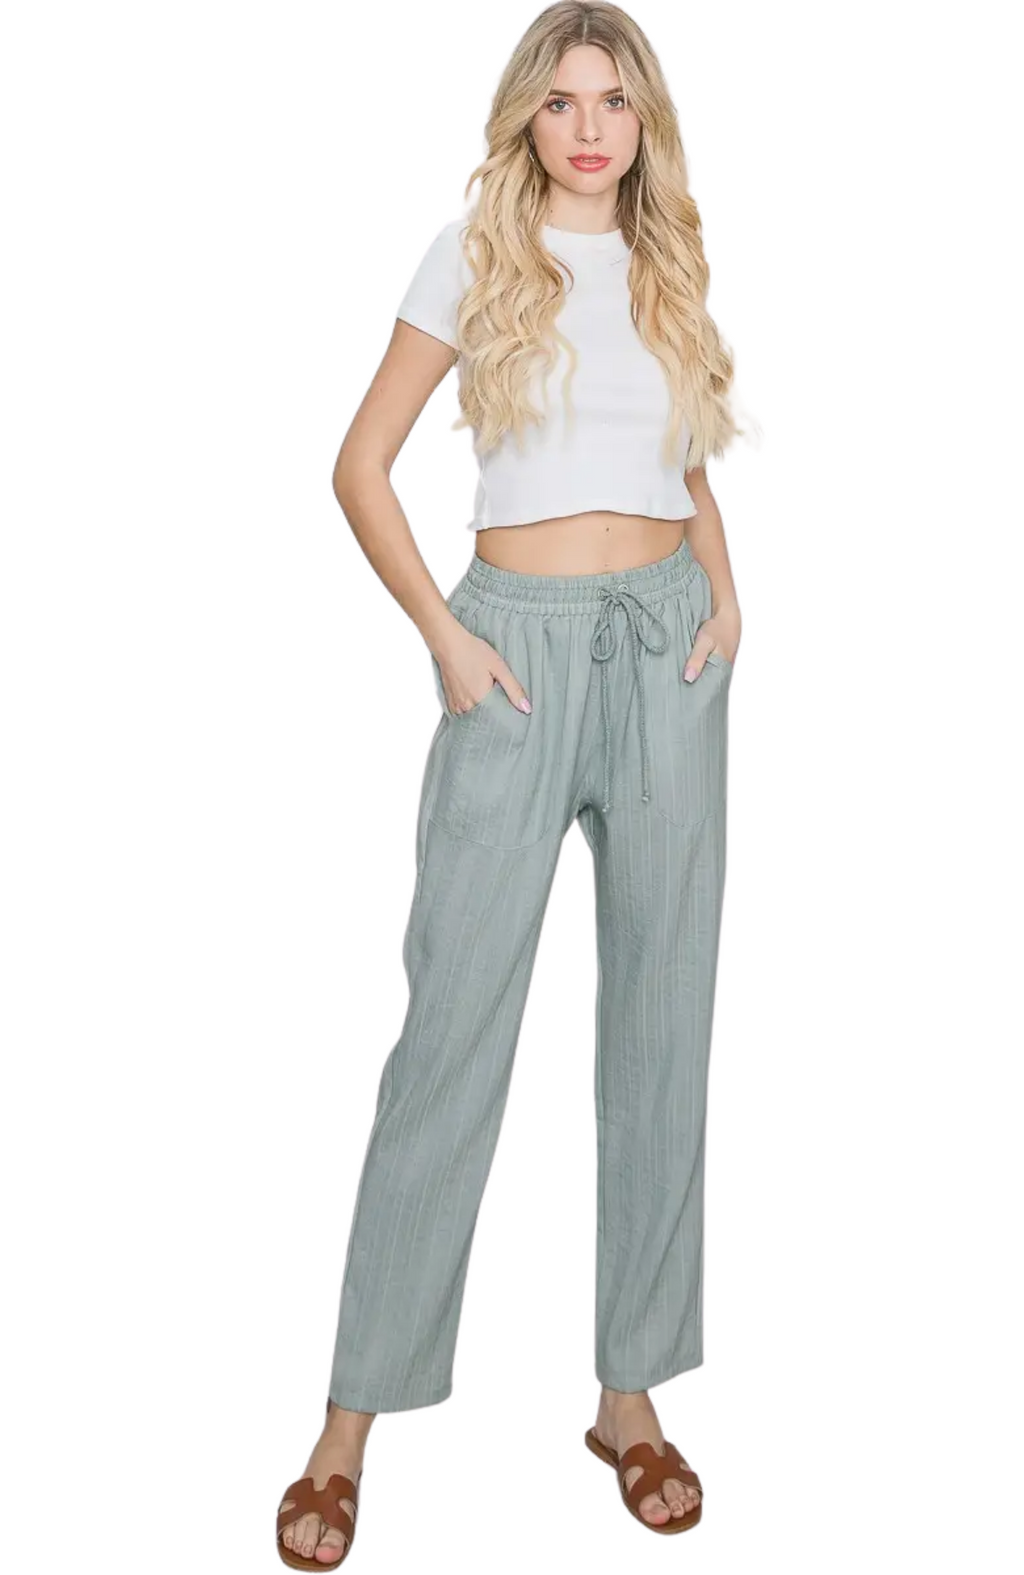 Avery Blue Textured Slacks